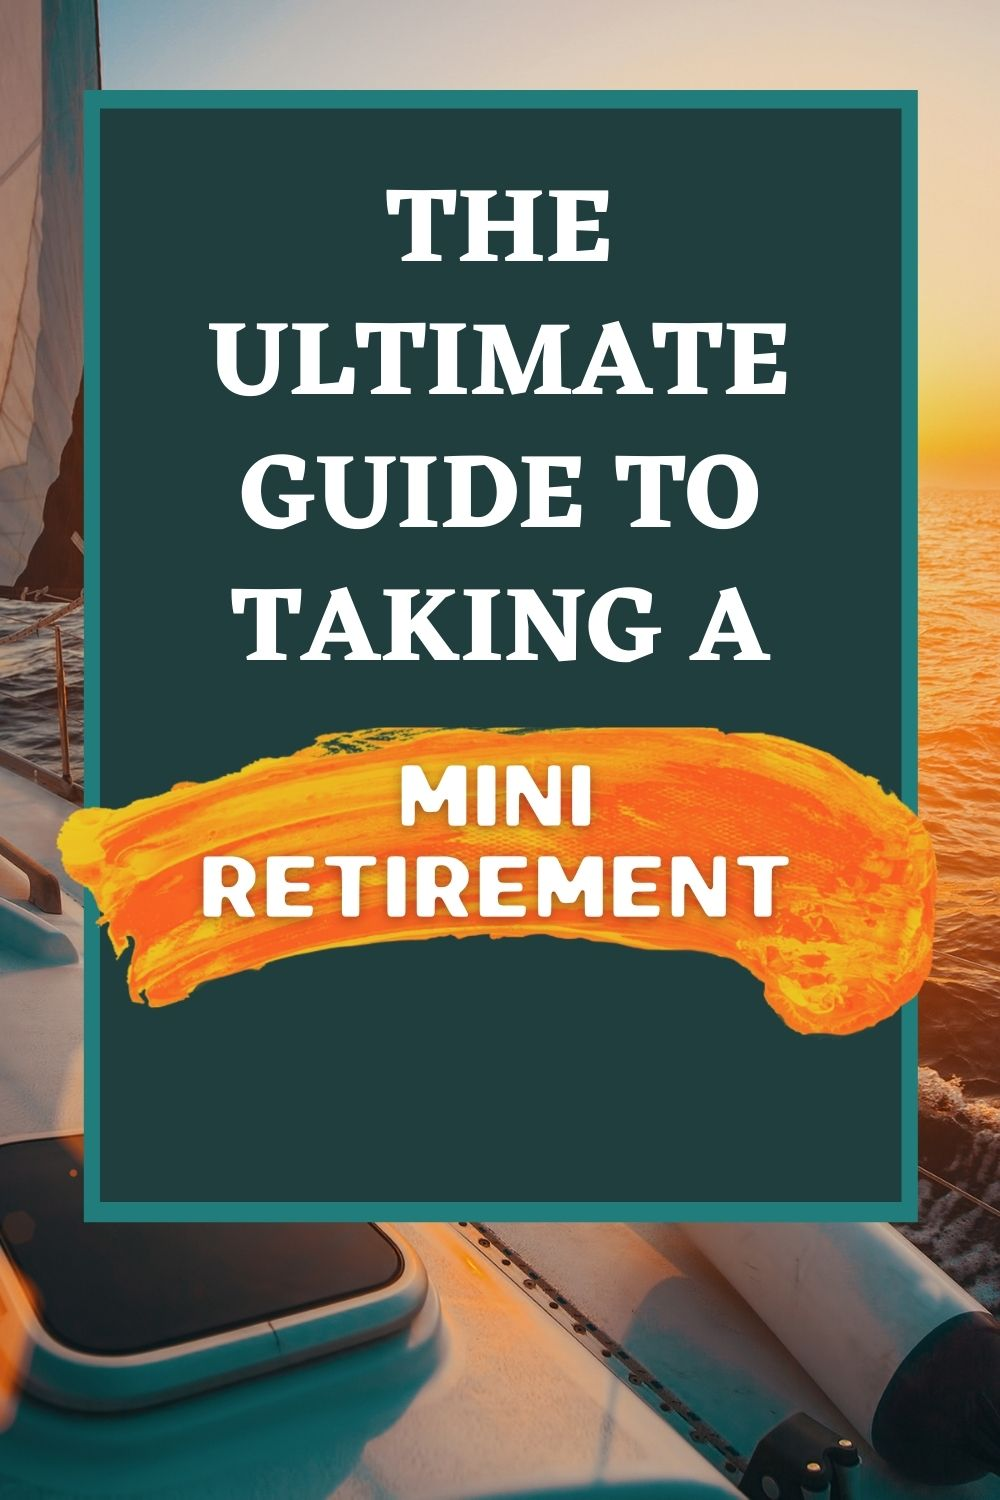 The Ultimate Guide to Planning a Mini Retirement